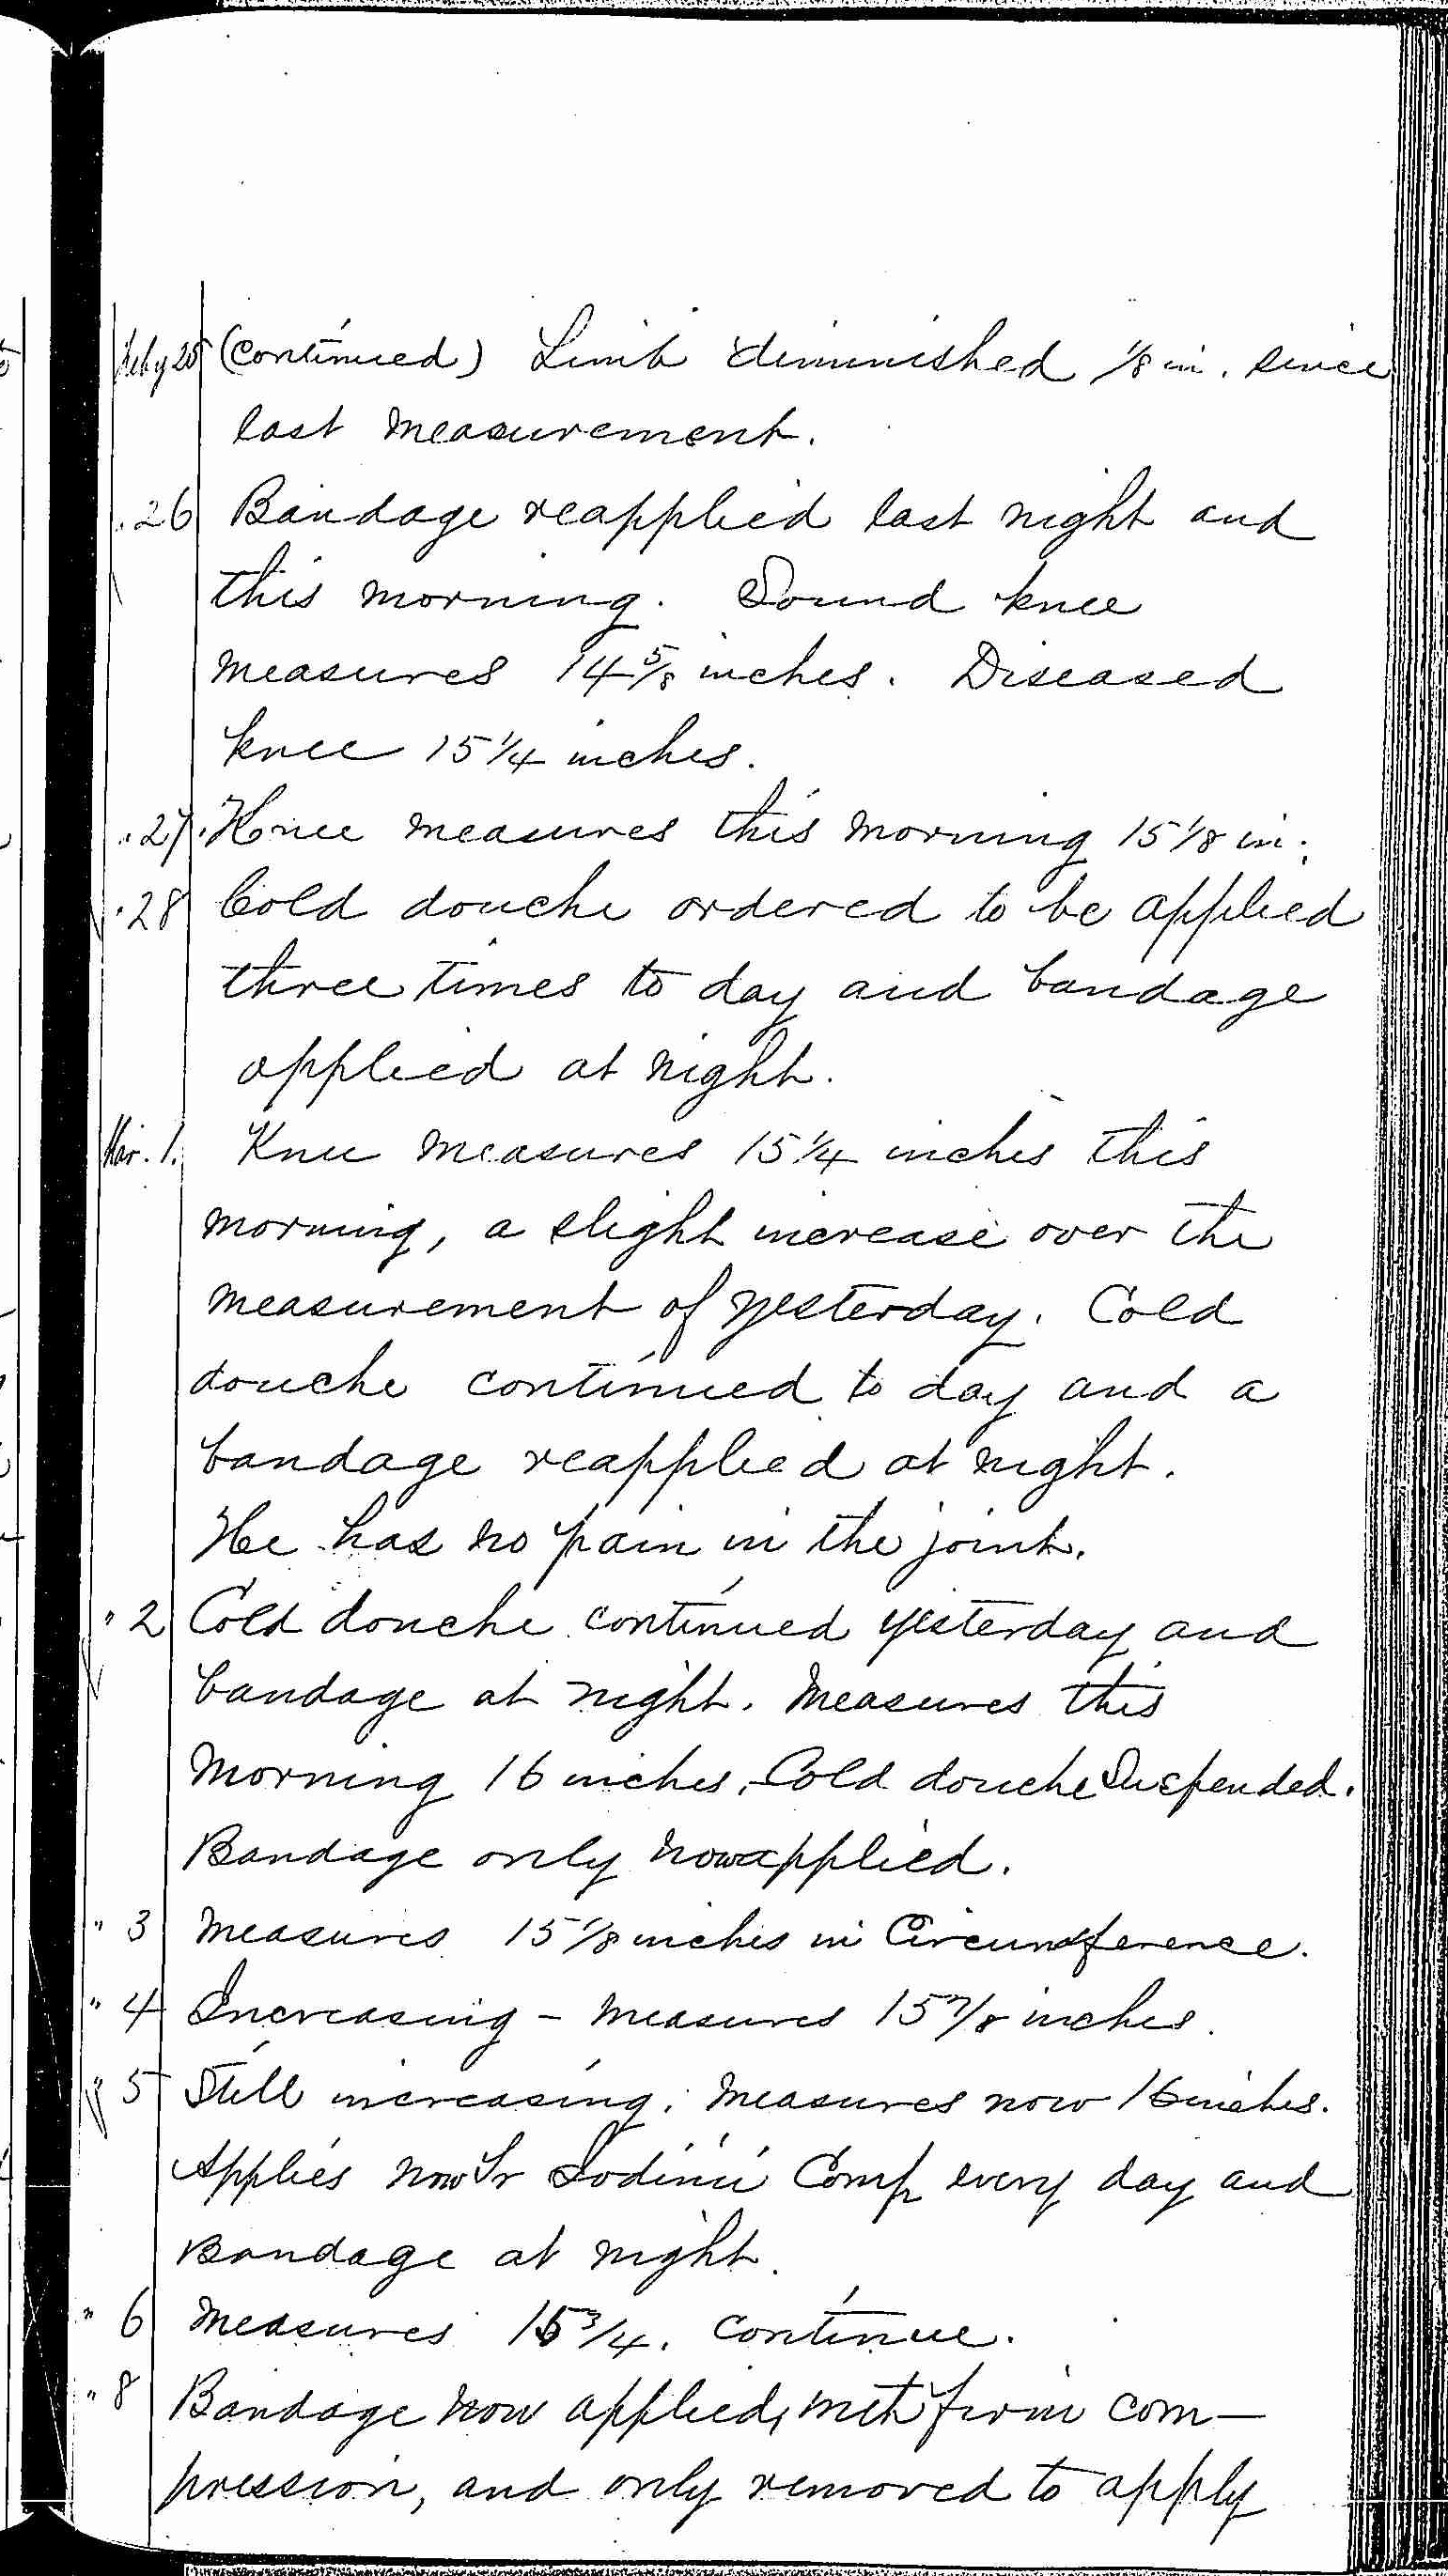 Entry for Henry James (page 3 of 8) in the log Hospital Tickets and Case Papers - Naval Hospital - Washington, D.C. - 1868-69